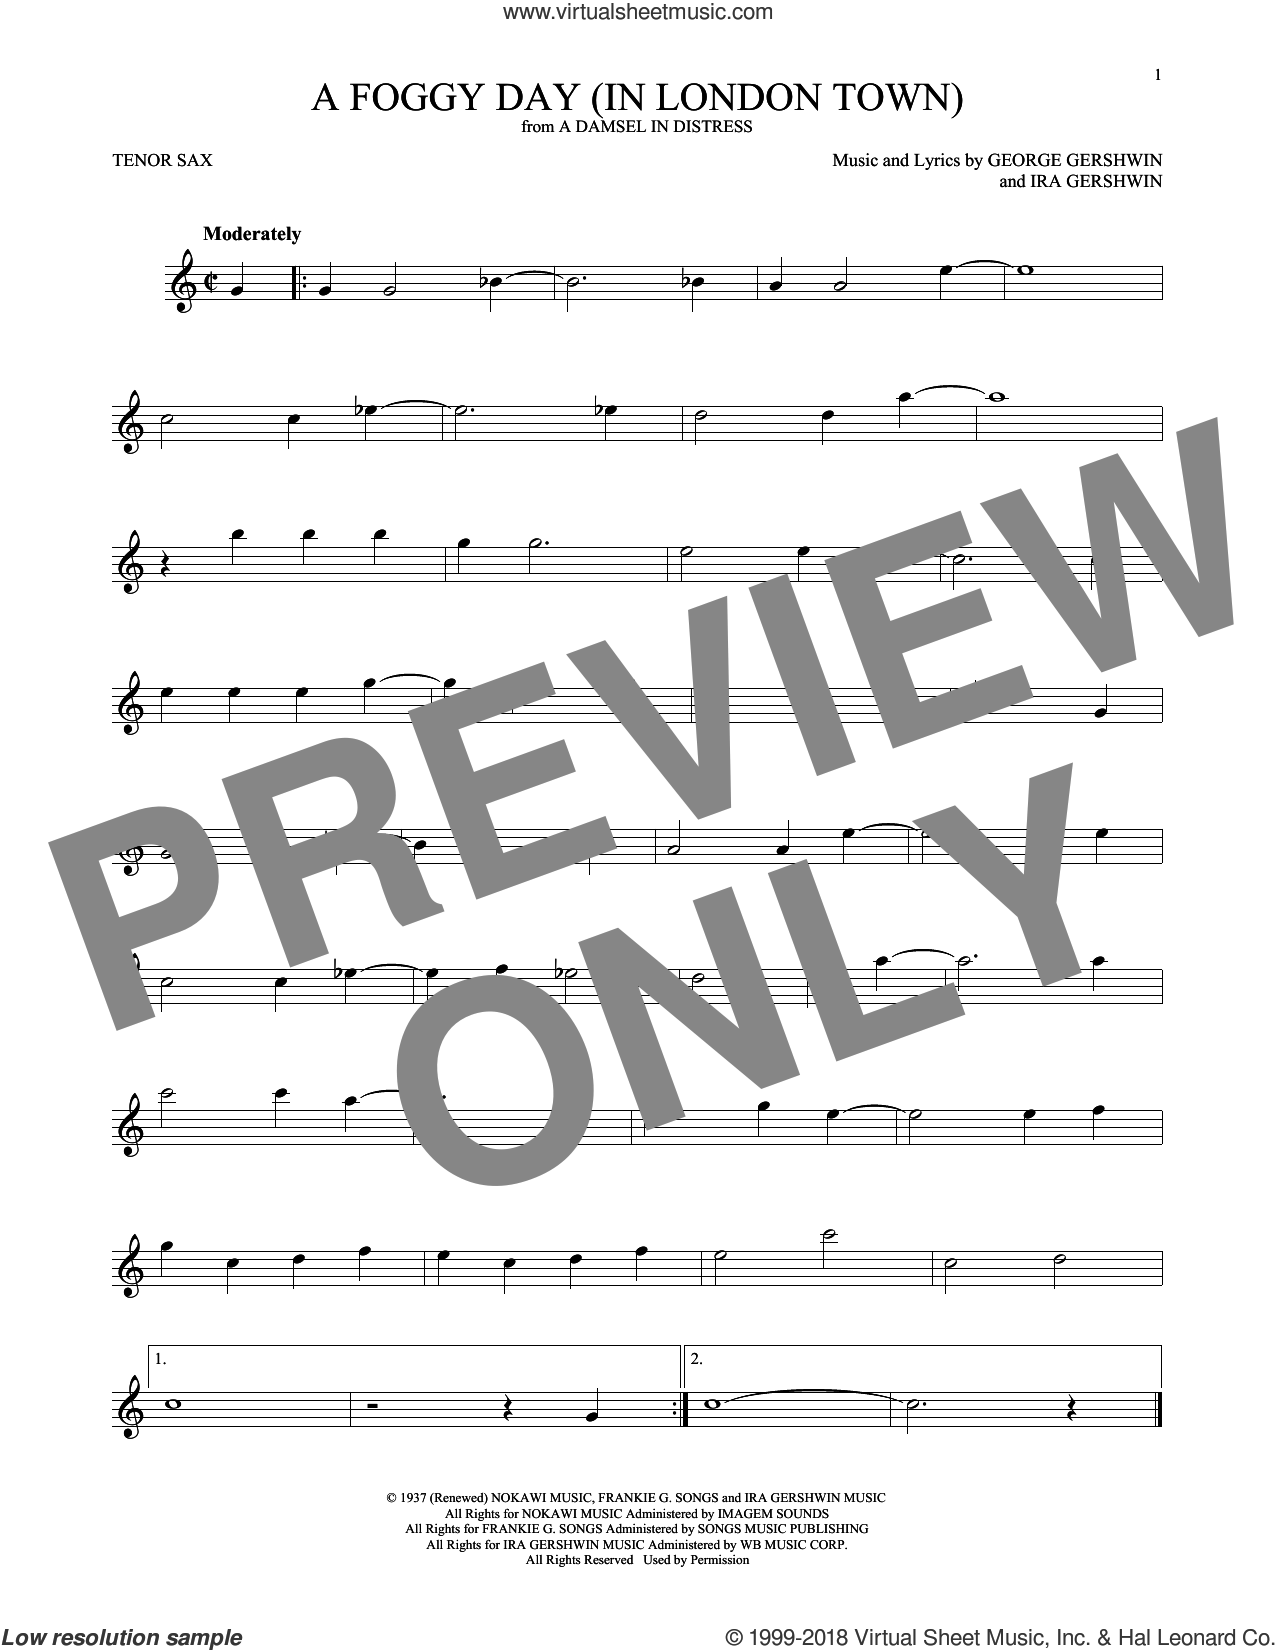 A Foggy Day (In London Town) sheet music for tenor saxophone solo by George Gershwin and Ira Gershwin, intermediate skill level